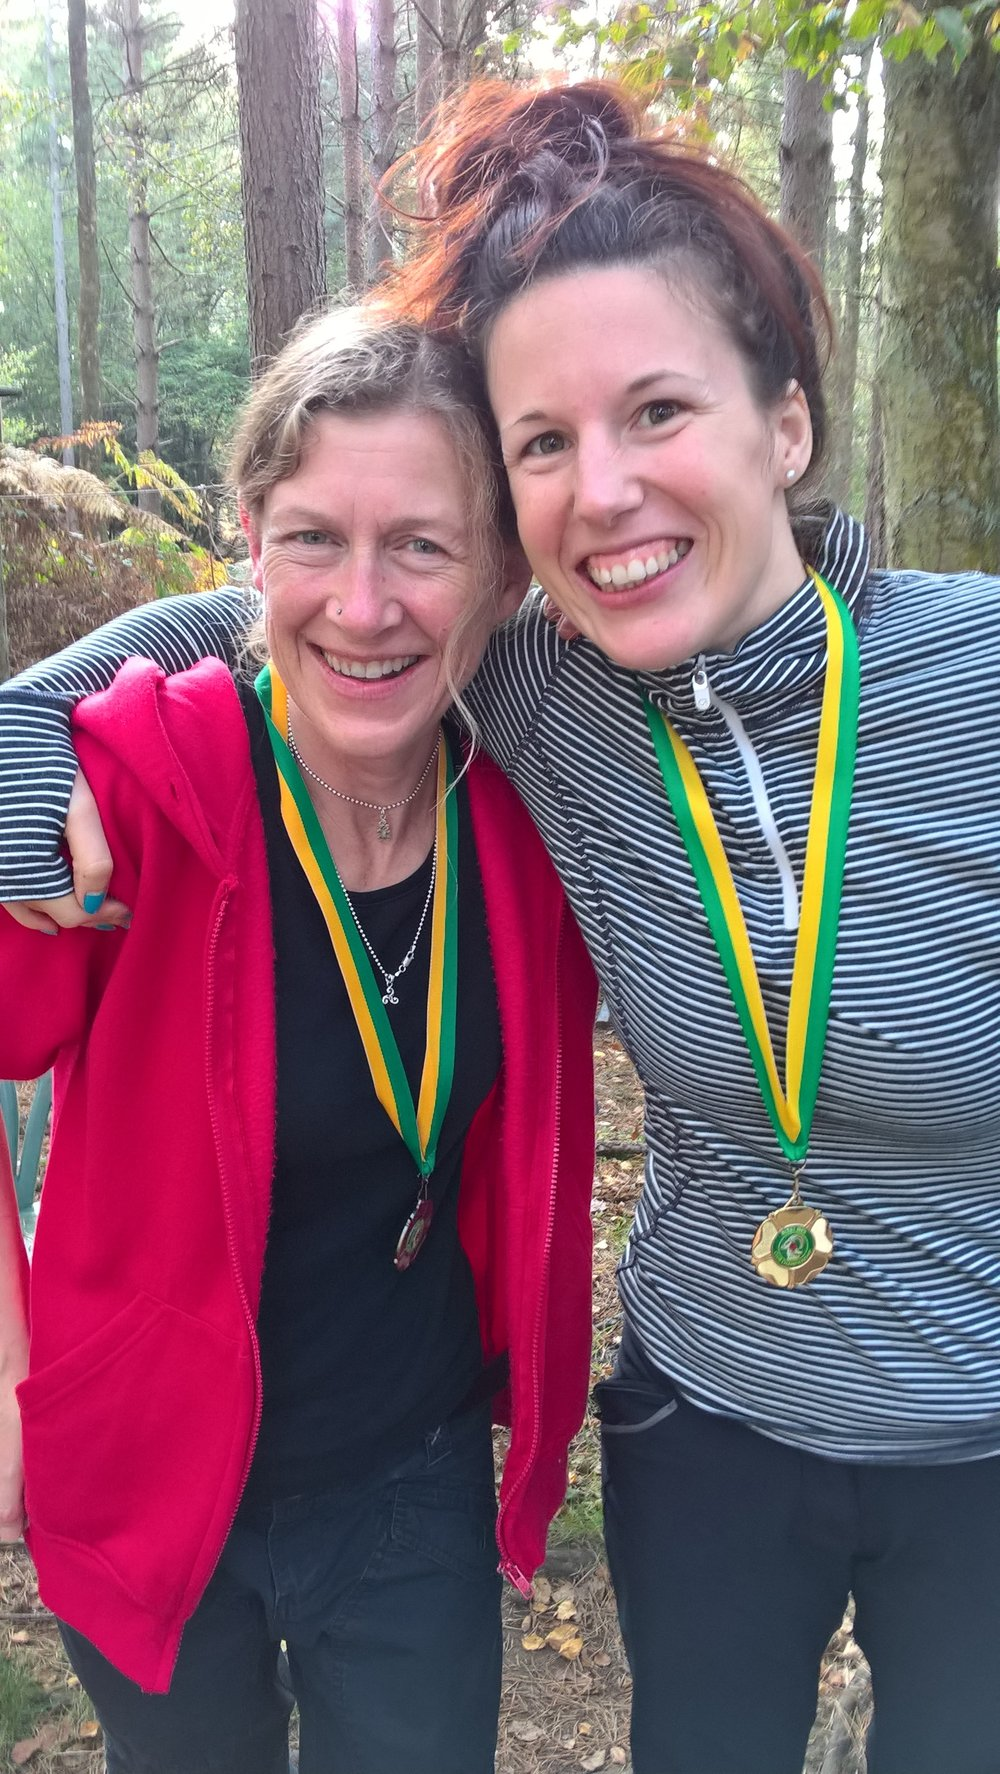 Jacqueline_and_Eva_medals.jpg